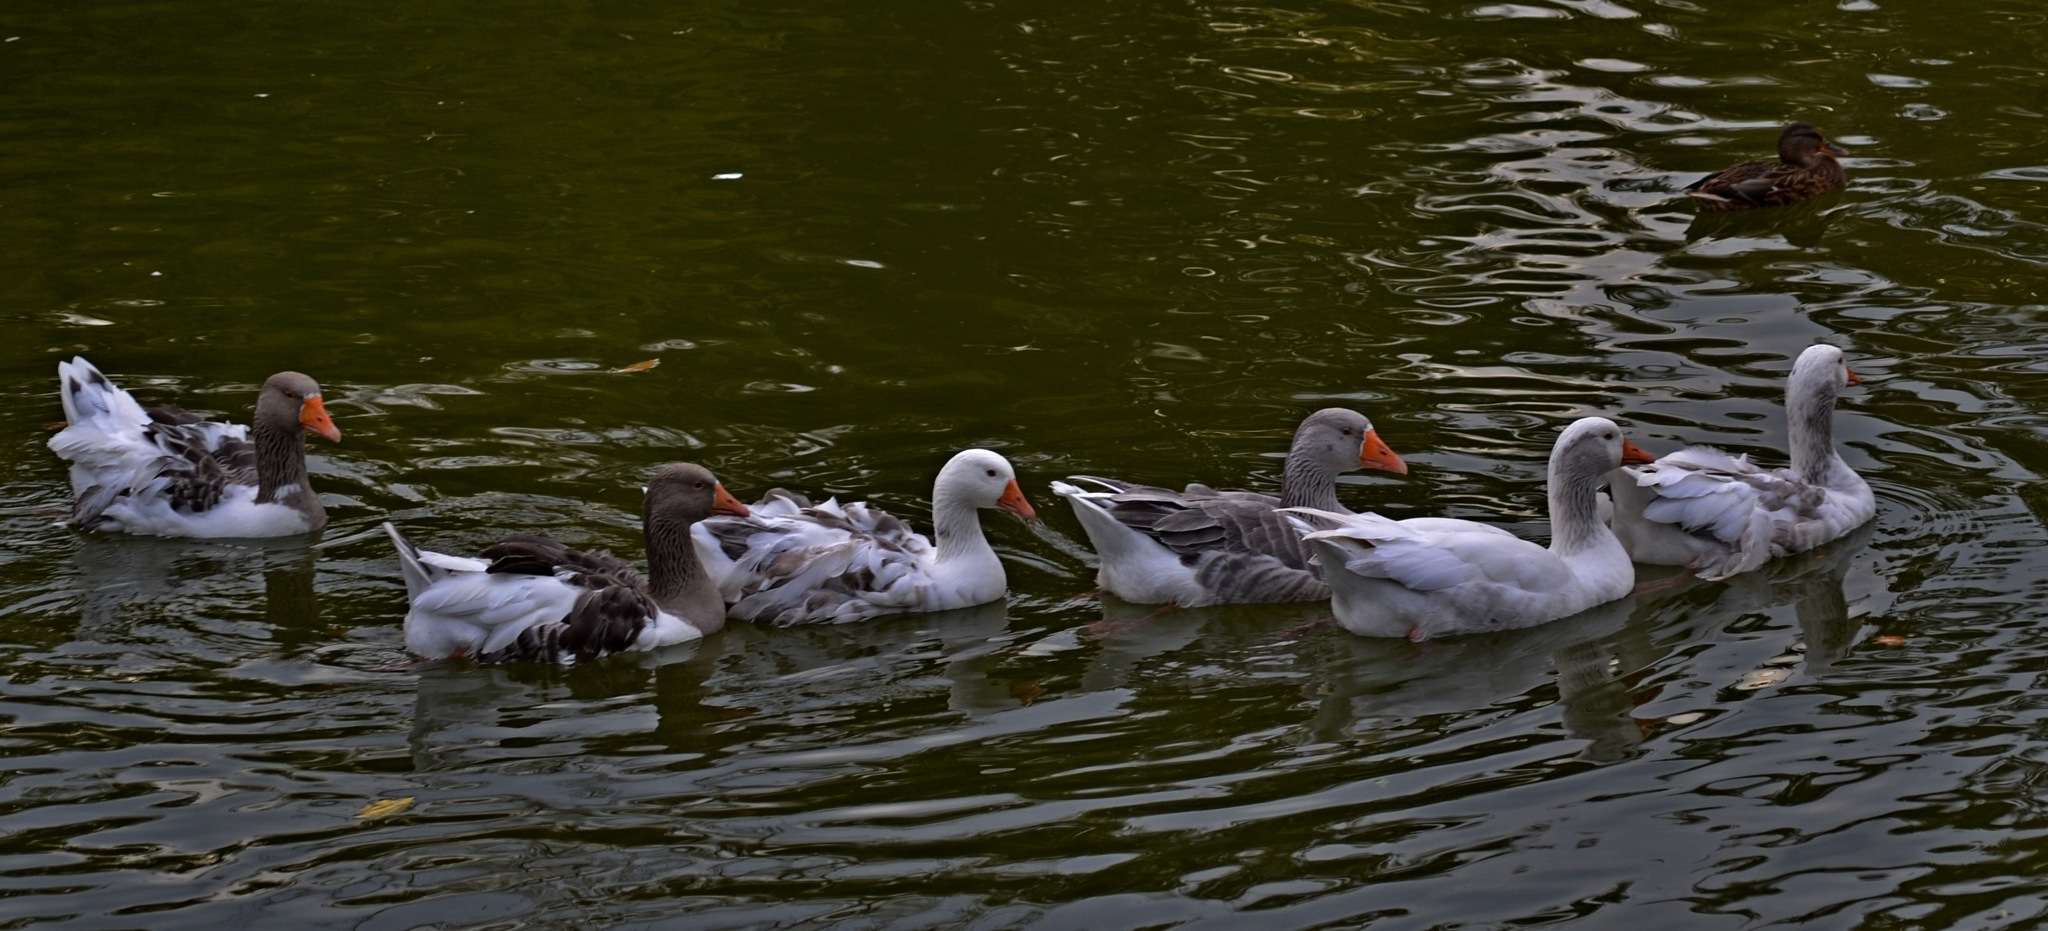 Geese by staicugheorghe3